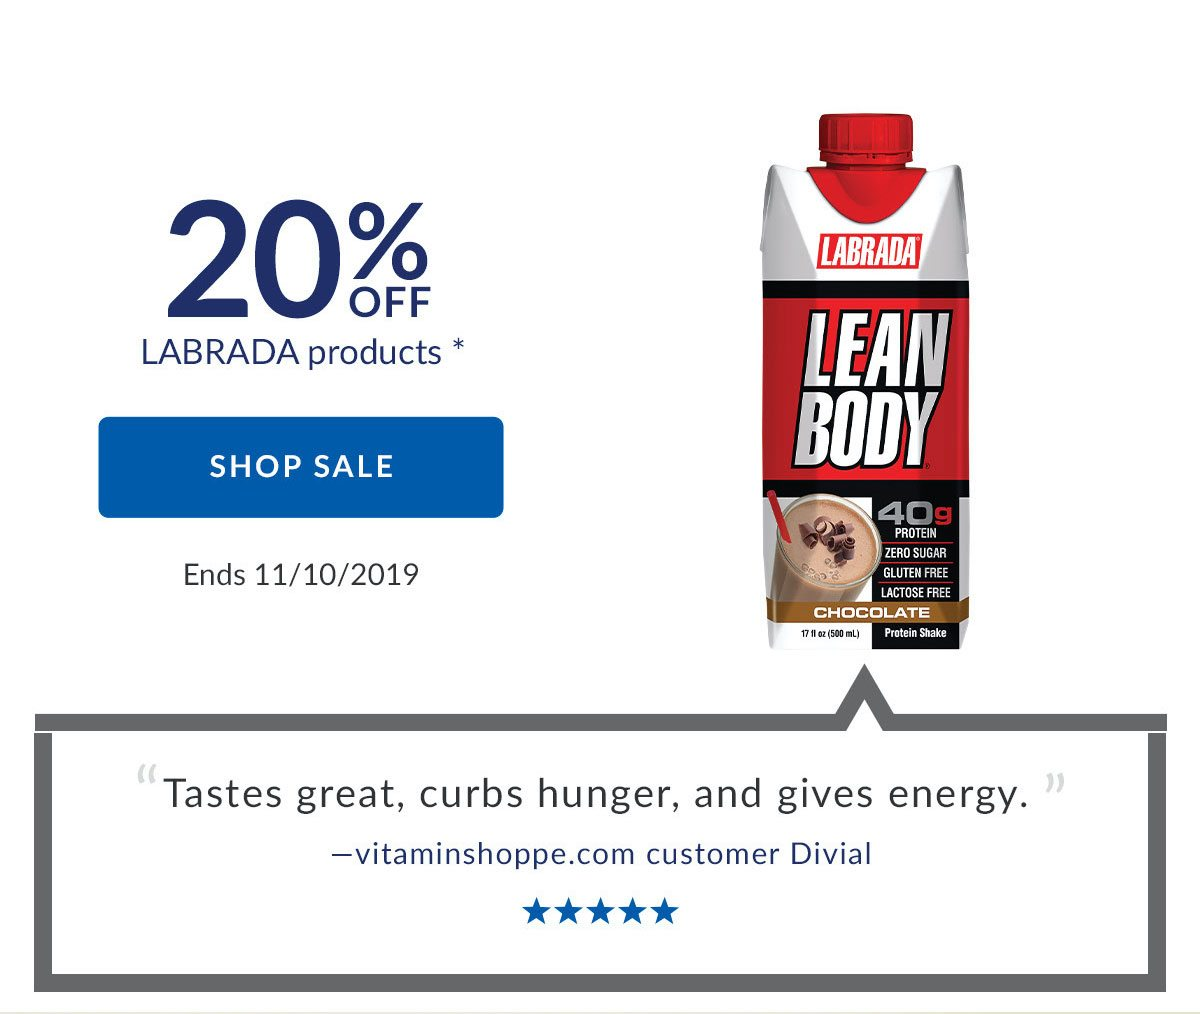 20% OFF LABRADA products * | SHOP SALE | Ends 11/20/2019 | 'Tastes great, curbs hunger, and gives energy.' -vitaminshoppe.com customer Divial | 5 Stars